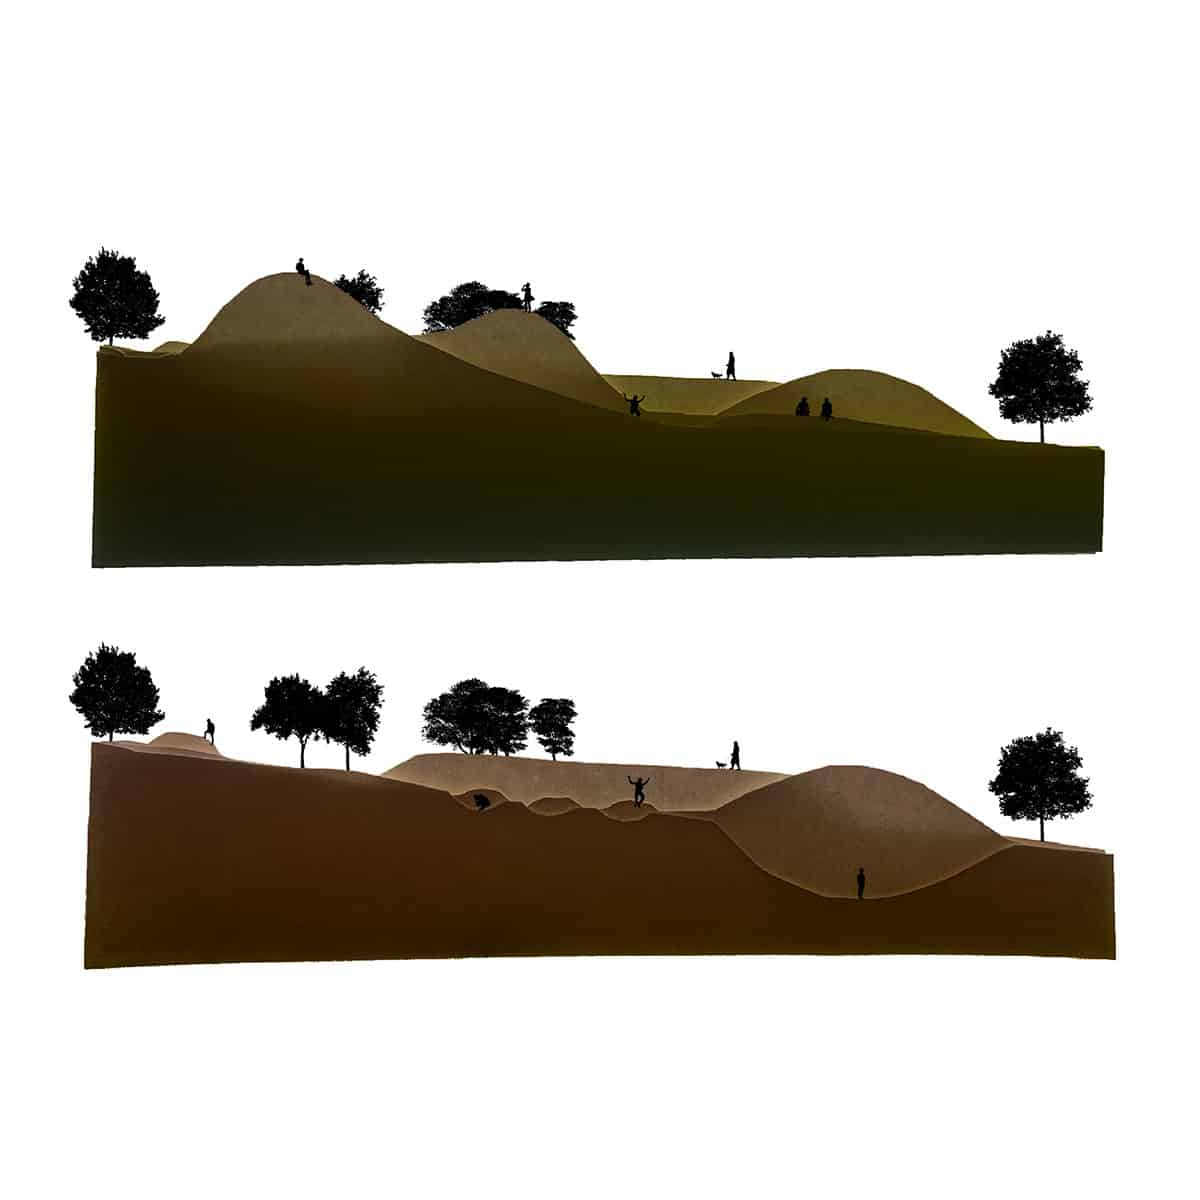 two digital elevations of hills and ditches, with figures and trees